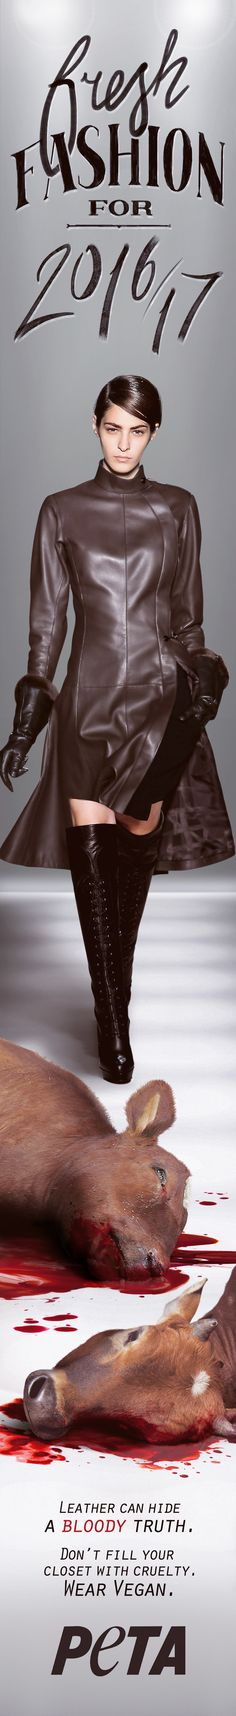 Fashion Trends for Fall/Winter 2016-2017. Punk-rock is back with leather minis, worn out tights, and the flicker of some sliver. Photo credit: fervent-adepte-de-la-mode via VisualHunt / CC BY (https://www.flickr.com/photos/51528537@N08/8521443102/)